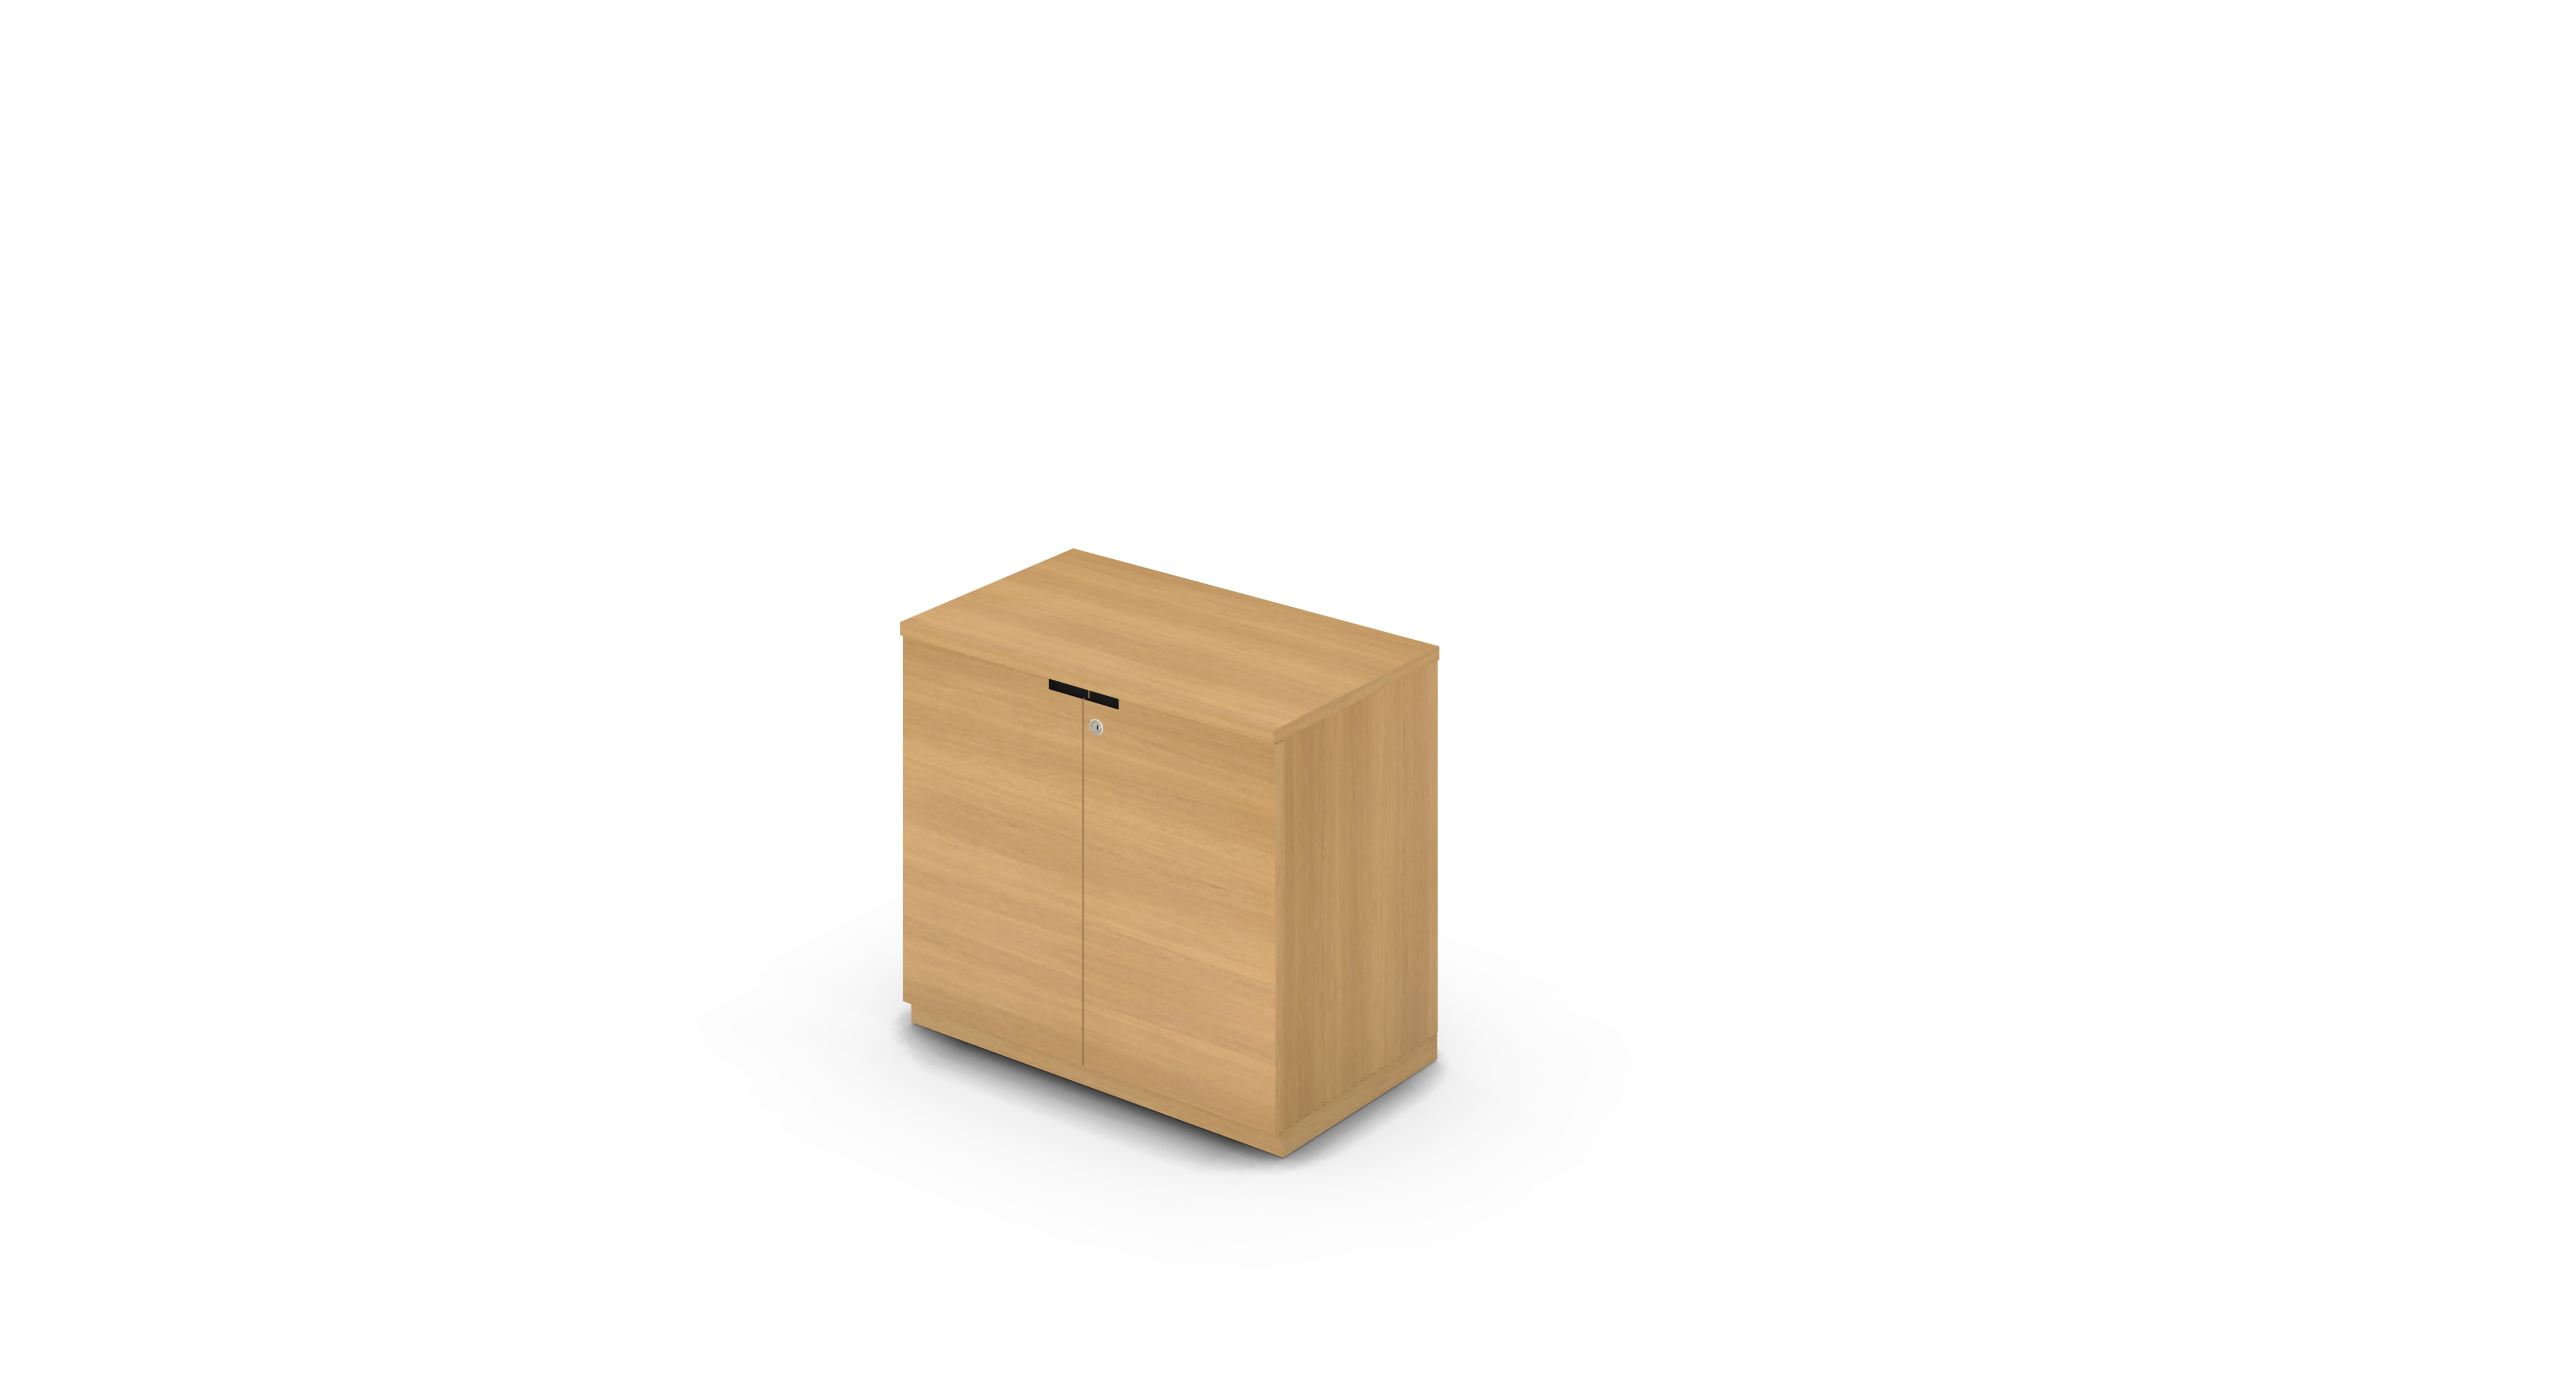 Cabinet_800x450x775_HD_Oak_CutOut_WithCylinder